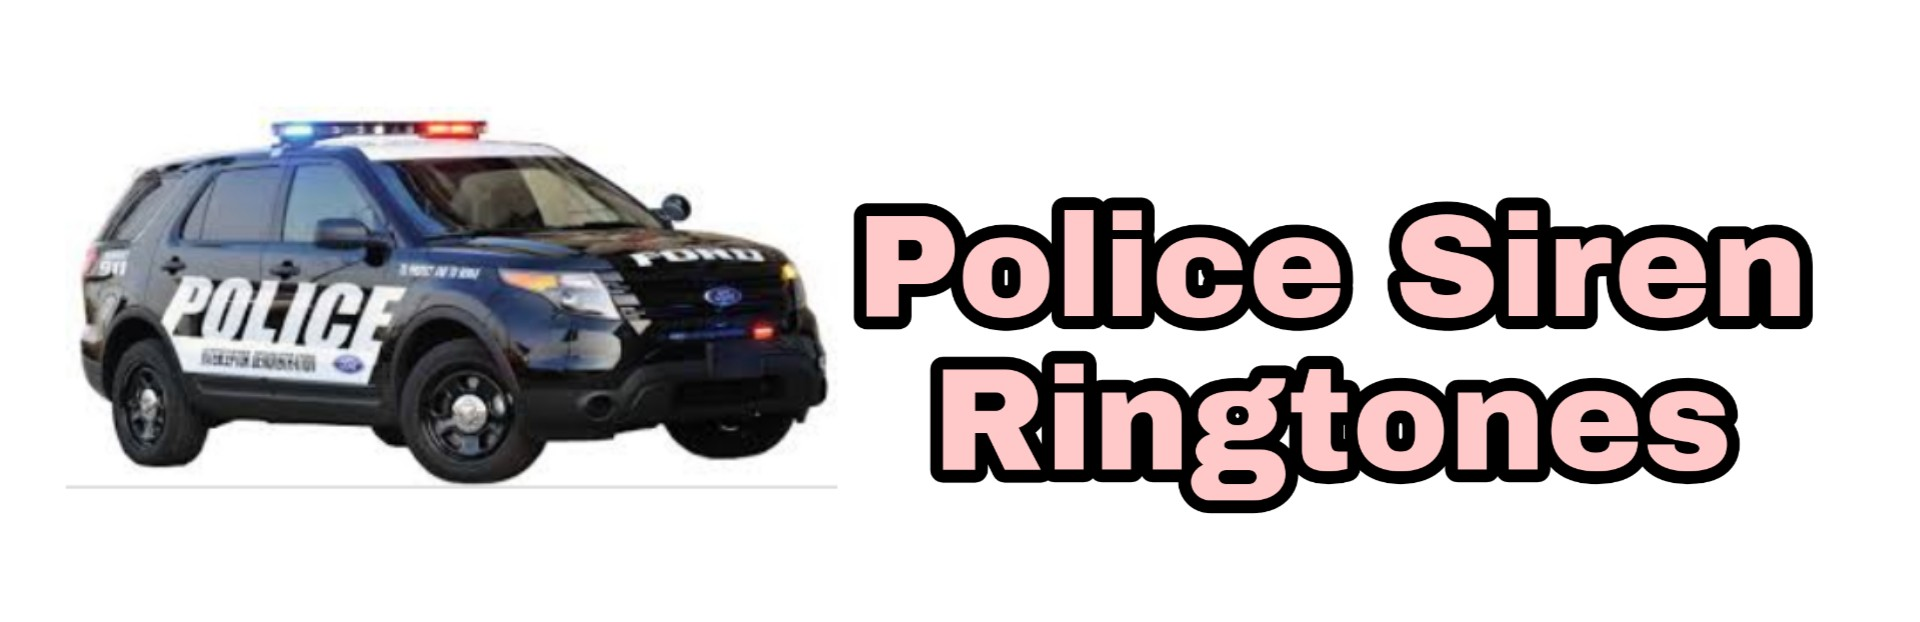 Police Mp3 Ringtone download